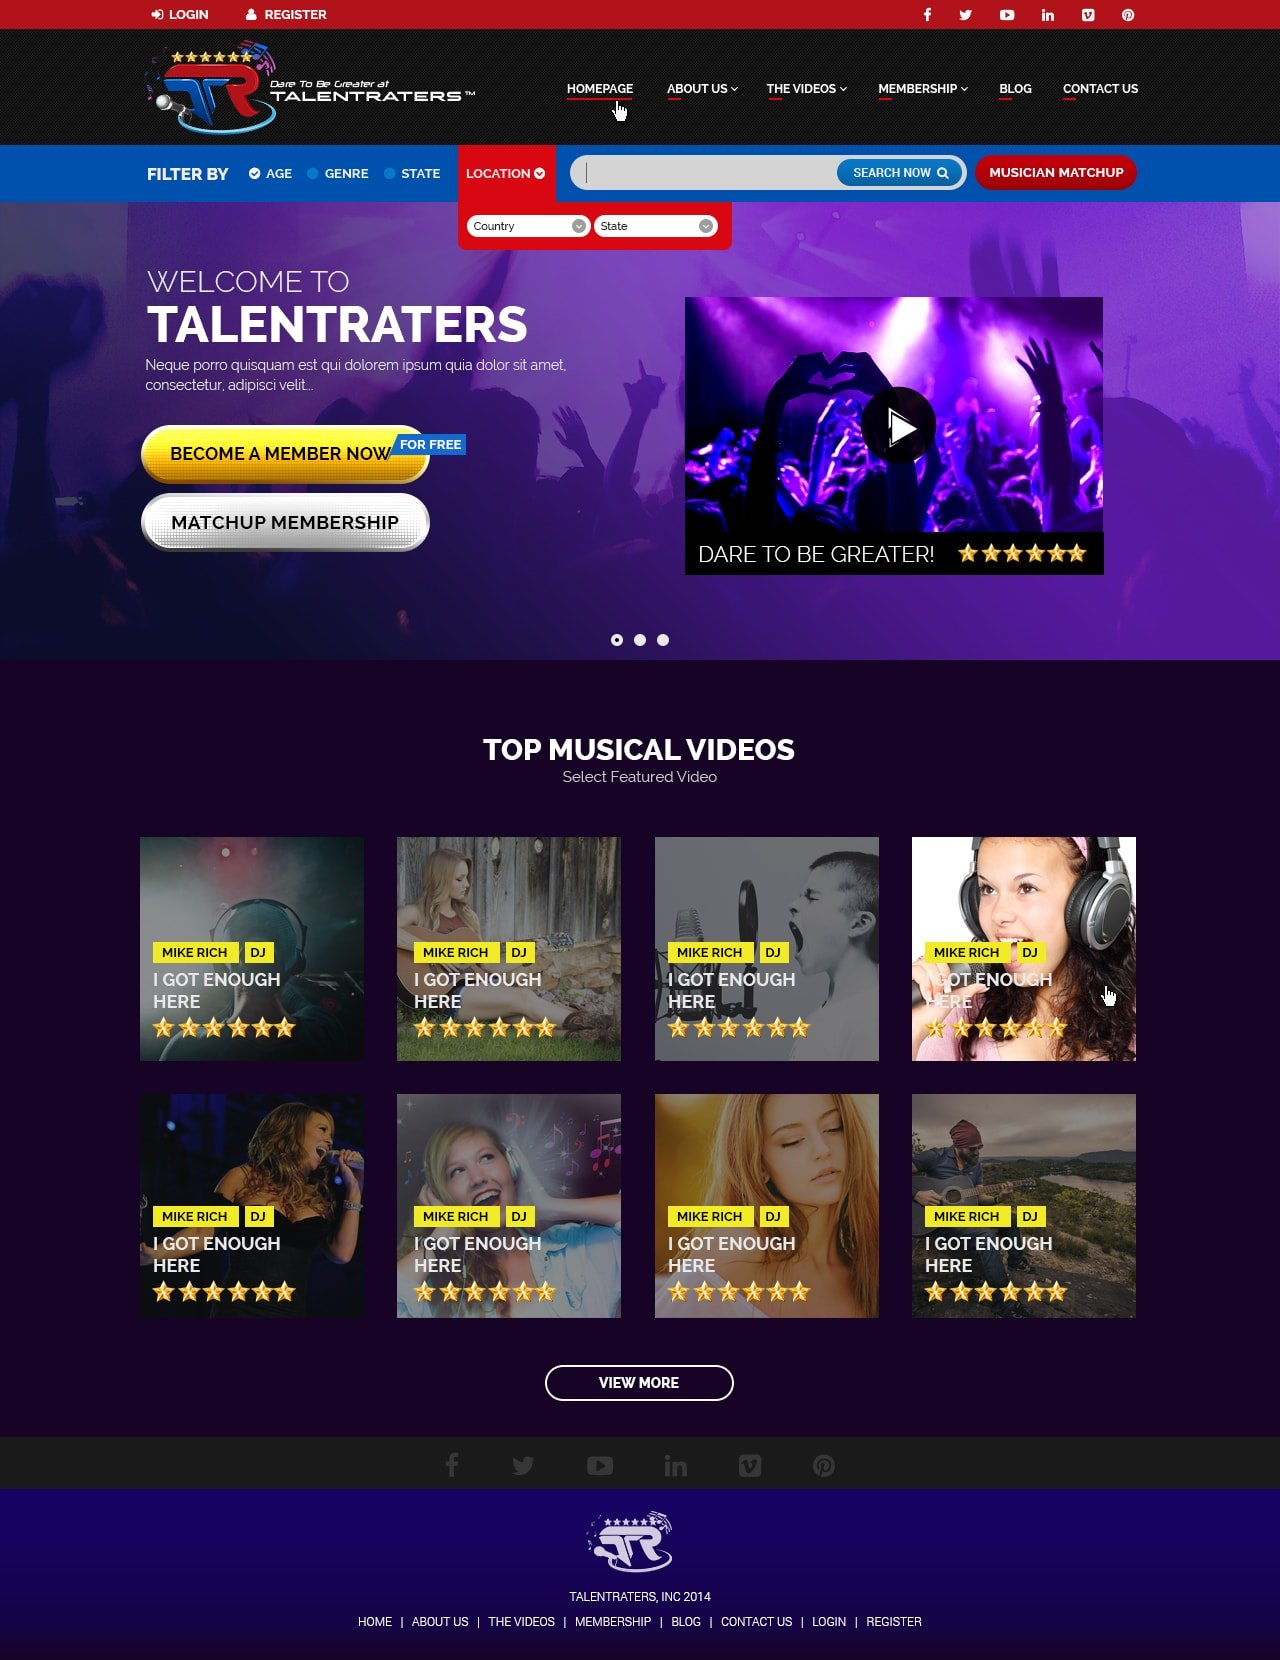 Talent Raters